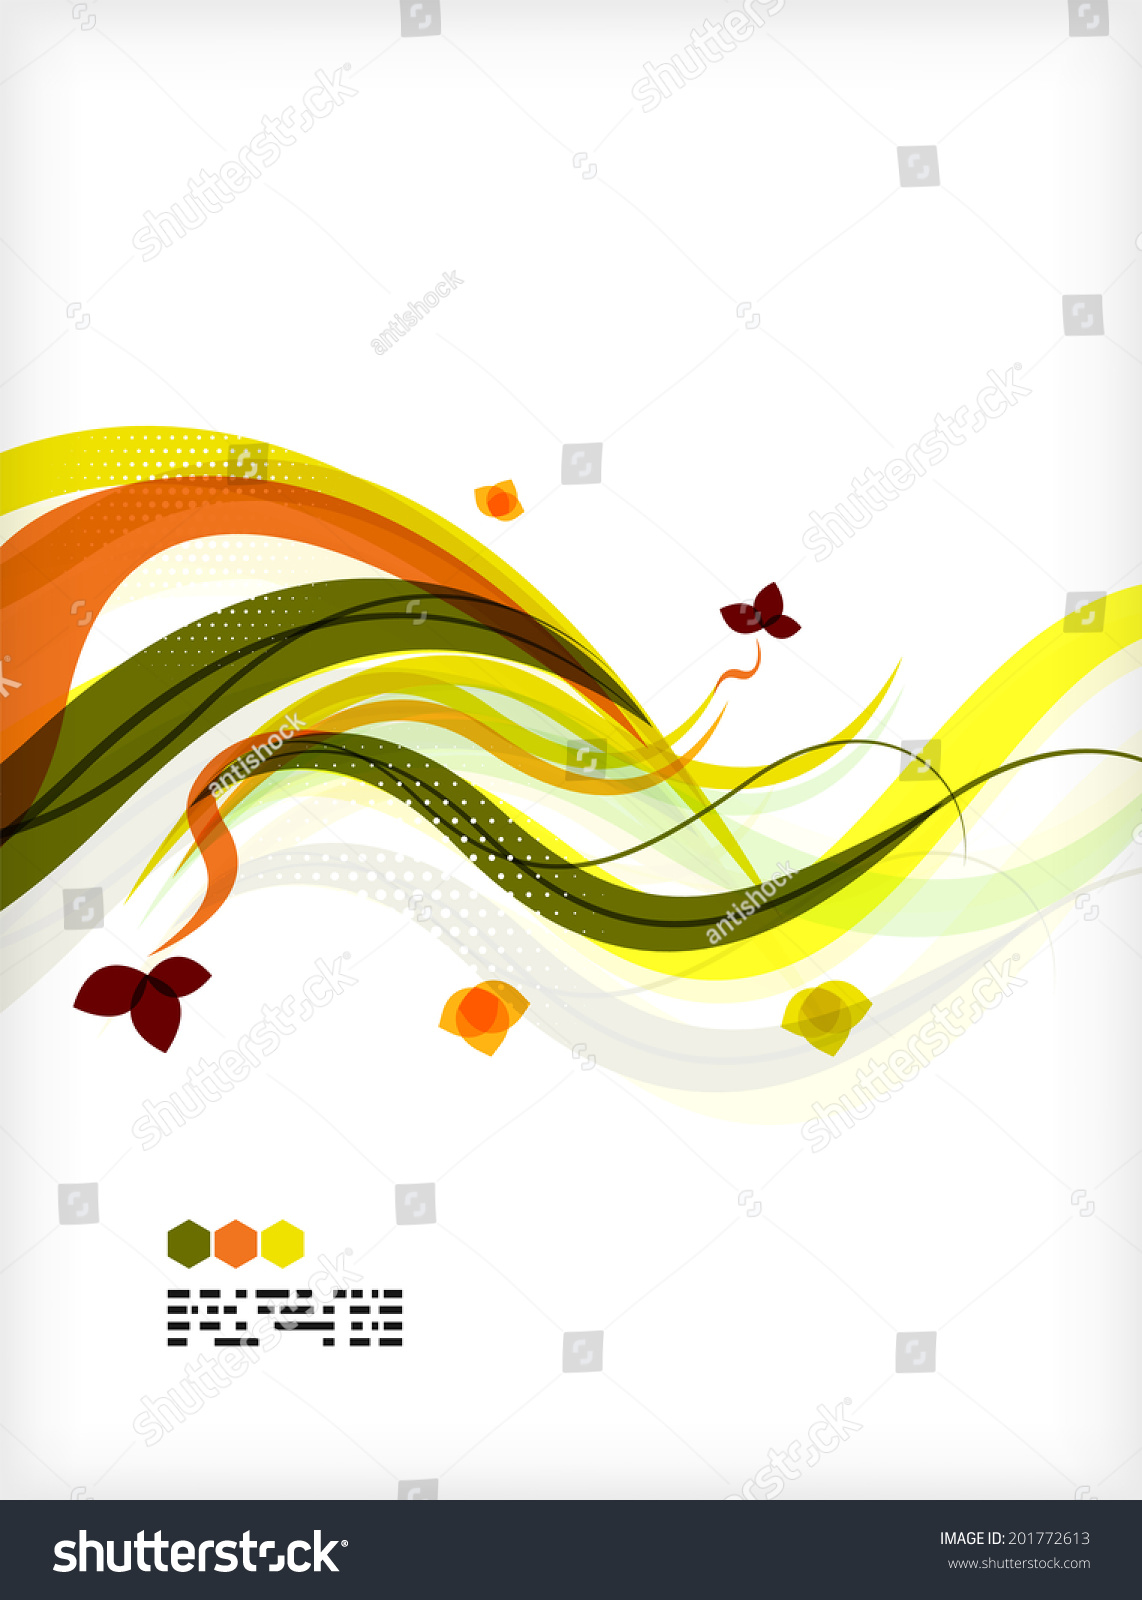 Colorful Floral Design Templates Copy Space Stock Illustration ...